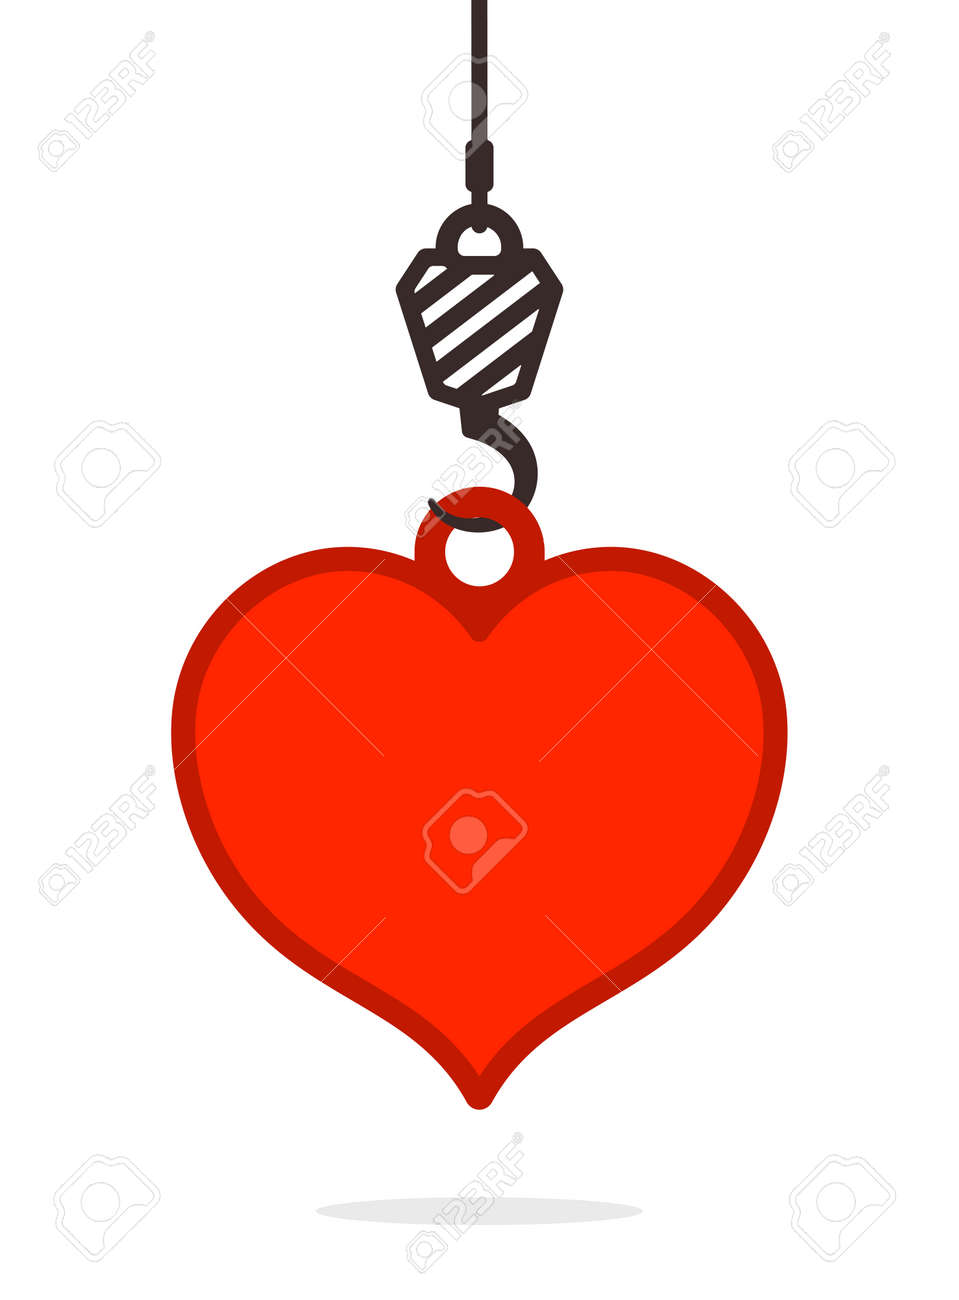 Heavy duty ornament hooks - Illustration Suspended Heavy Duty Hook On A Cable Lifting A Red Heart Conceptual Of Love And Romance Simple Vector Illustration Design Element